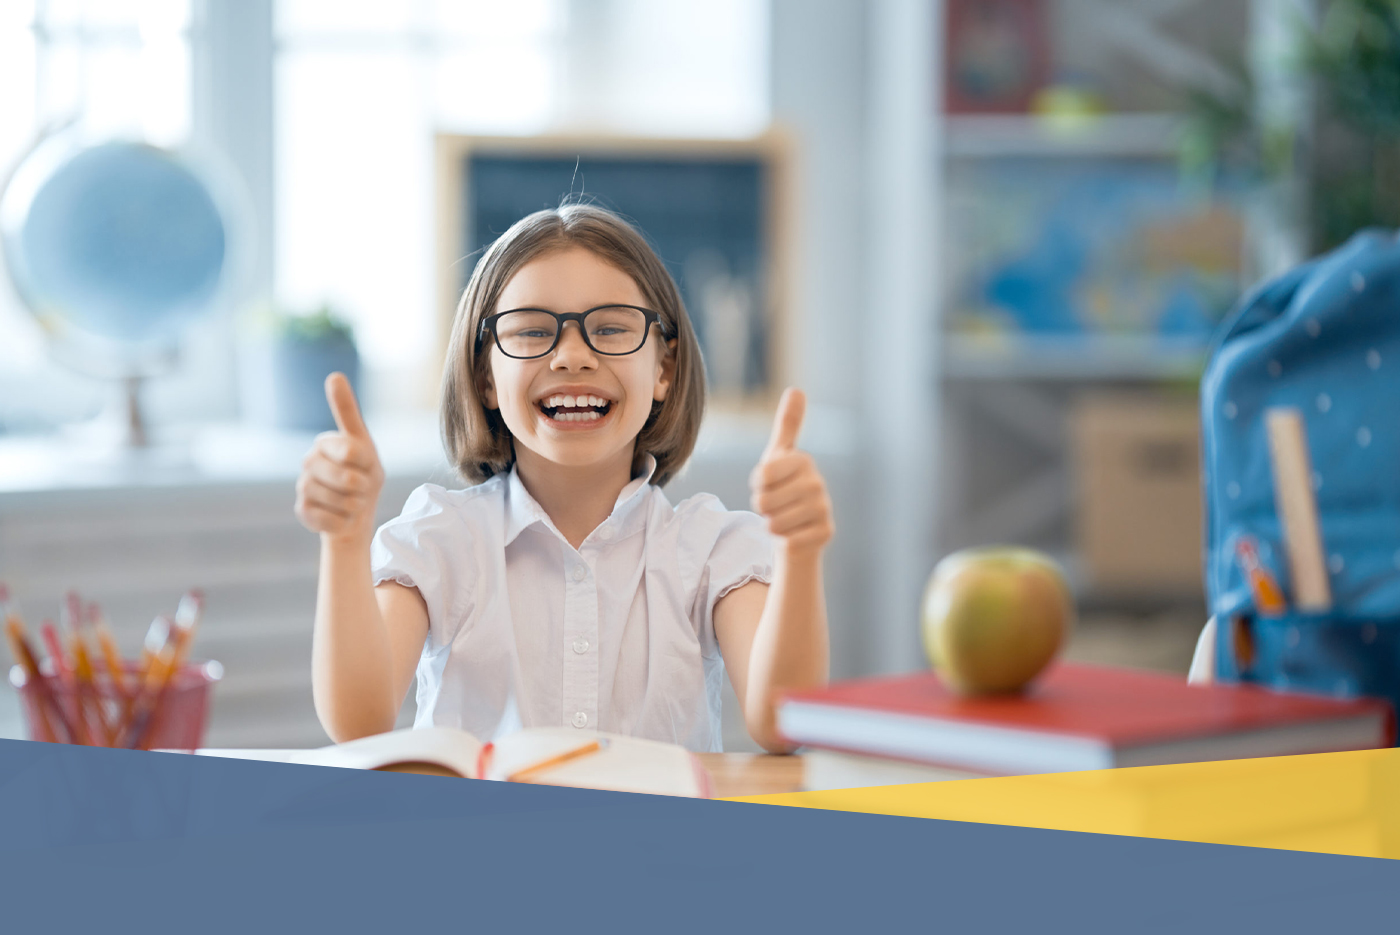 young student giving thumbs up